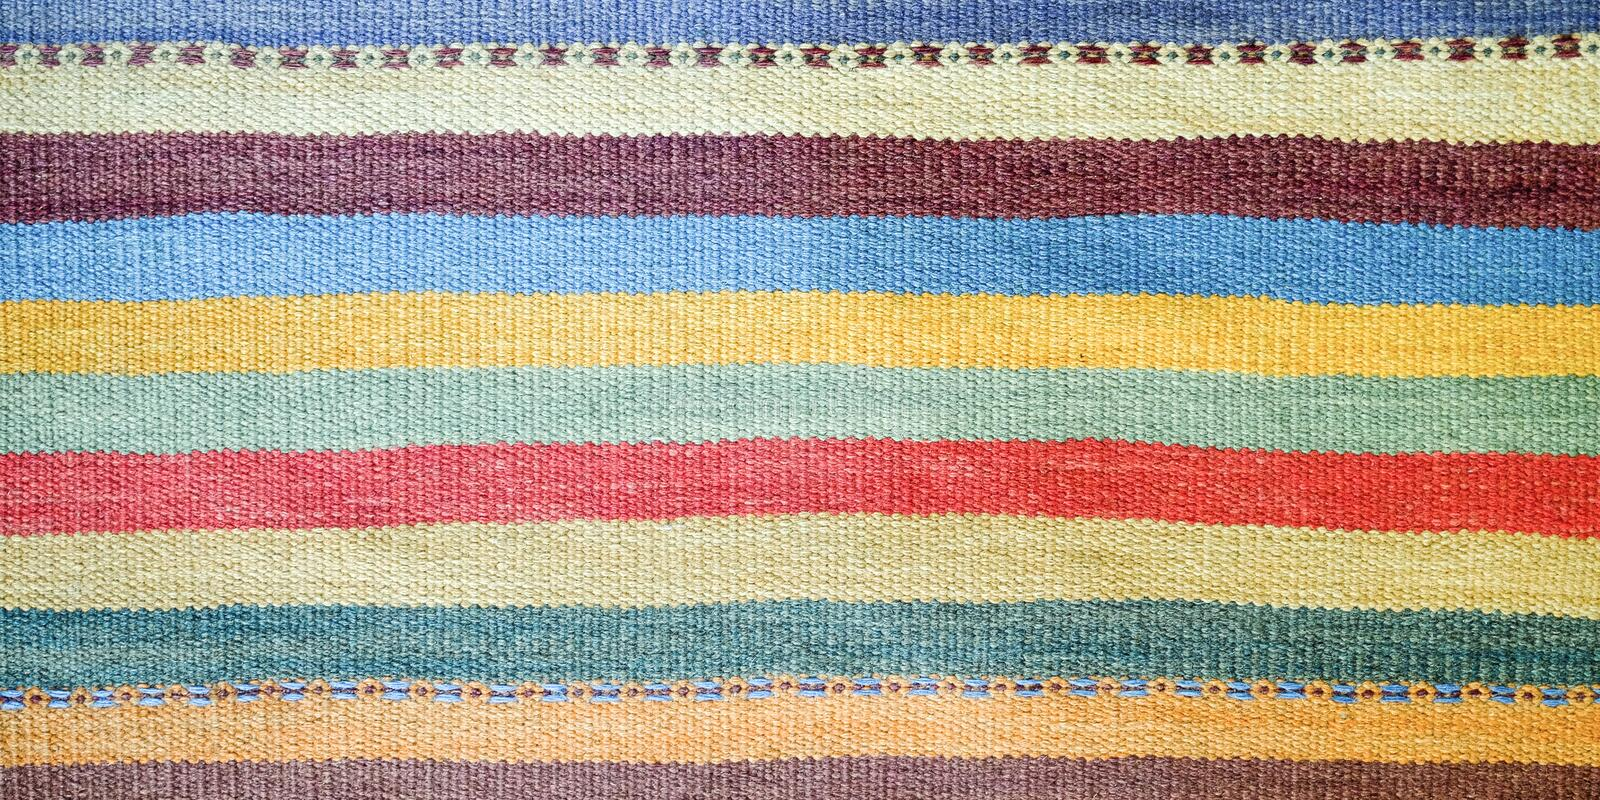 Colorful traditional Peruvian style, close-up rug surface. royalty free stock photo